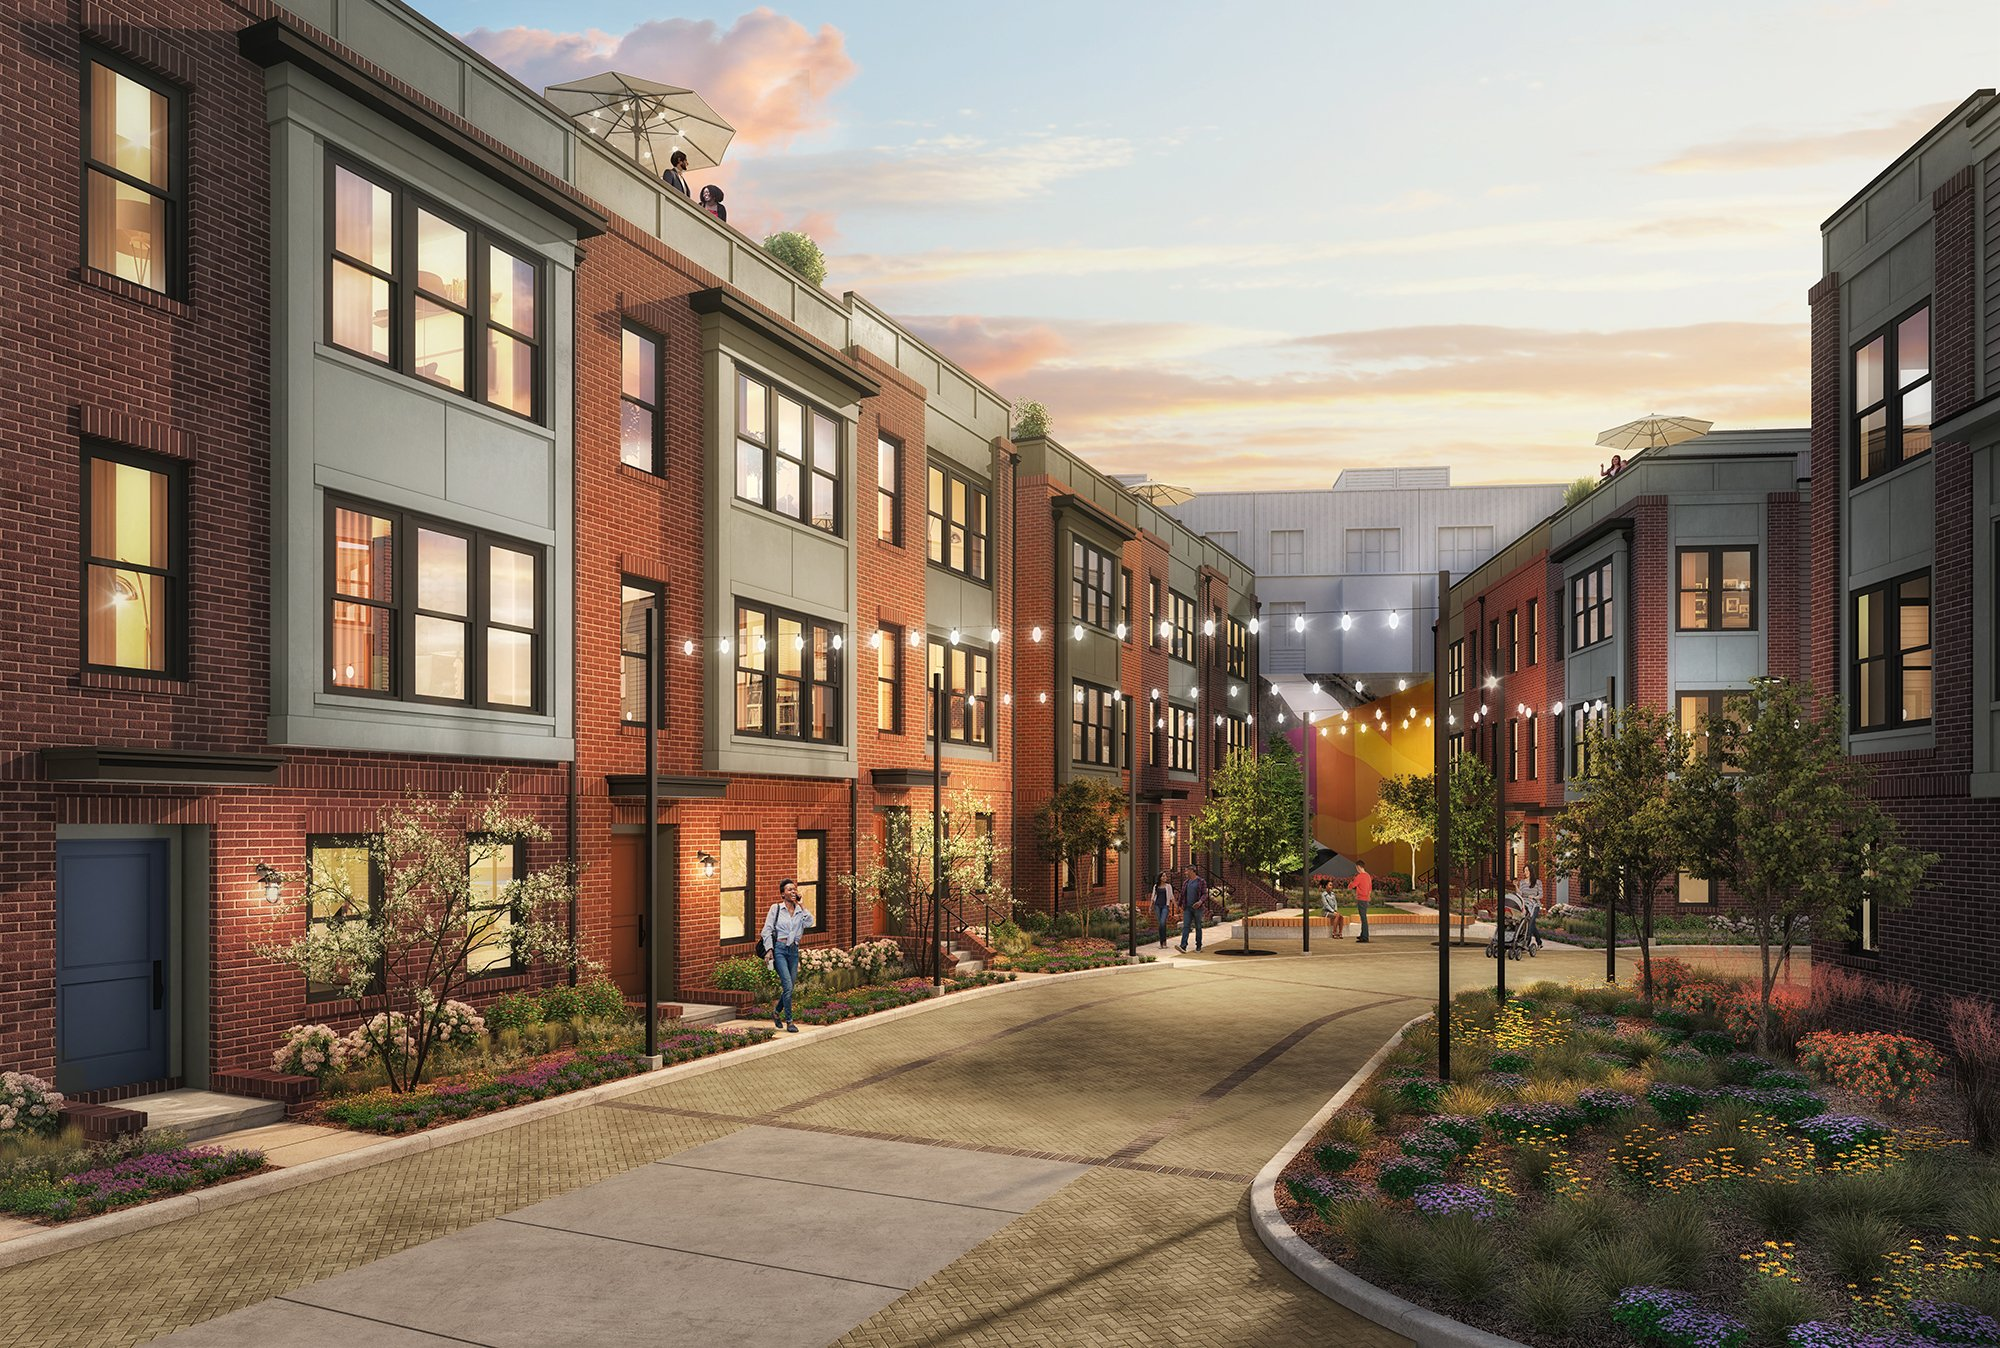 What is a 'Woonerf?' And what will it look like at Riggs Park Place?